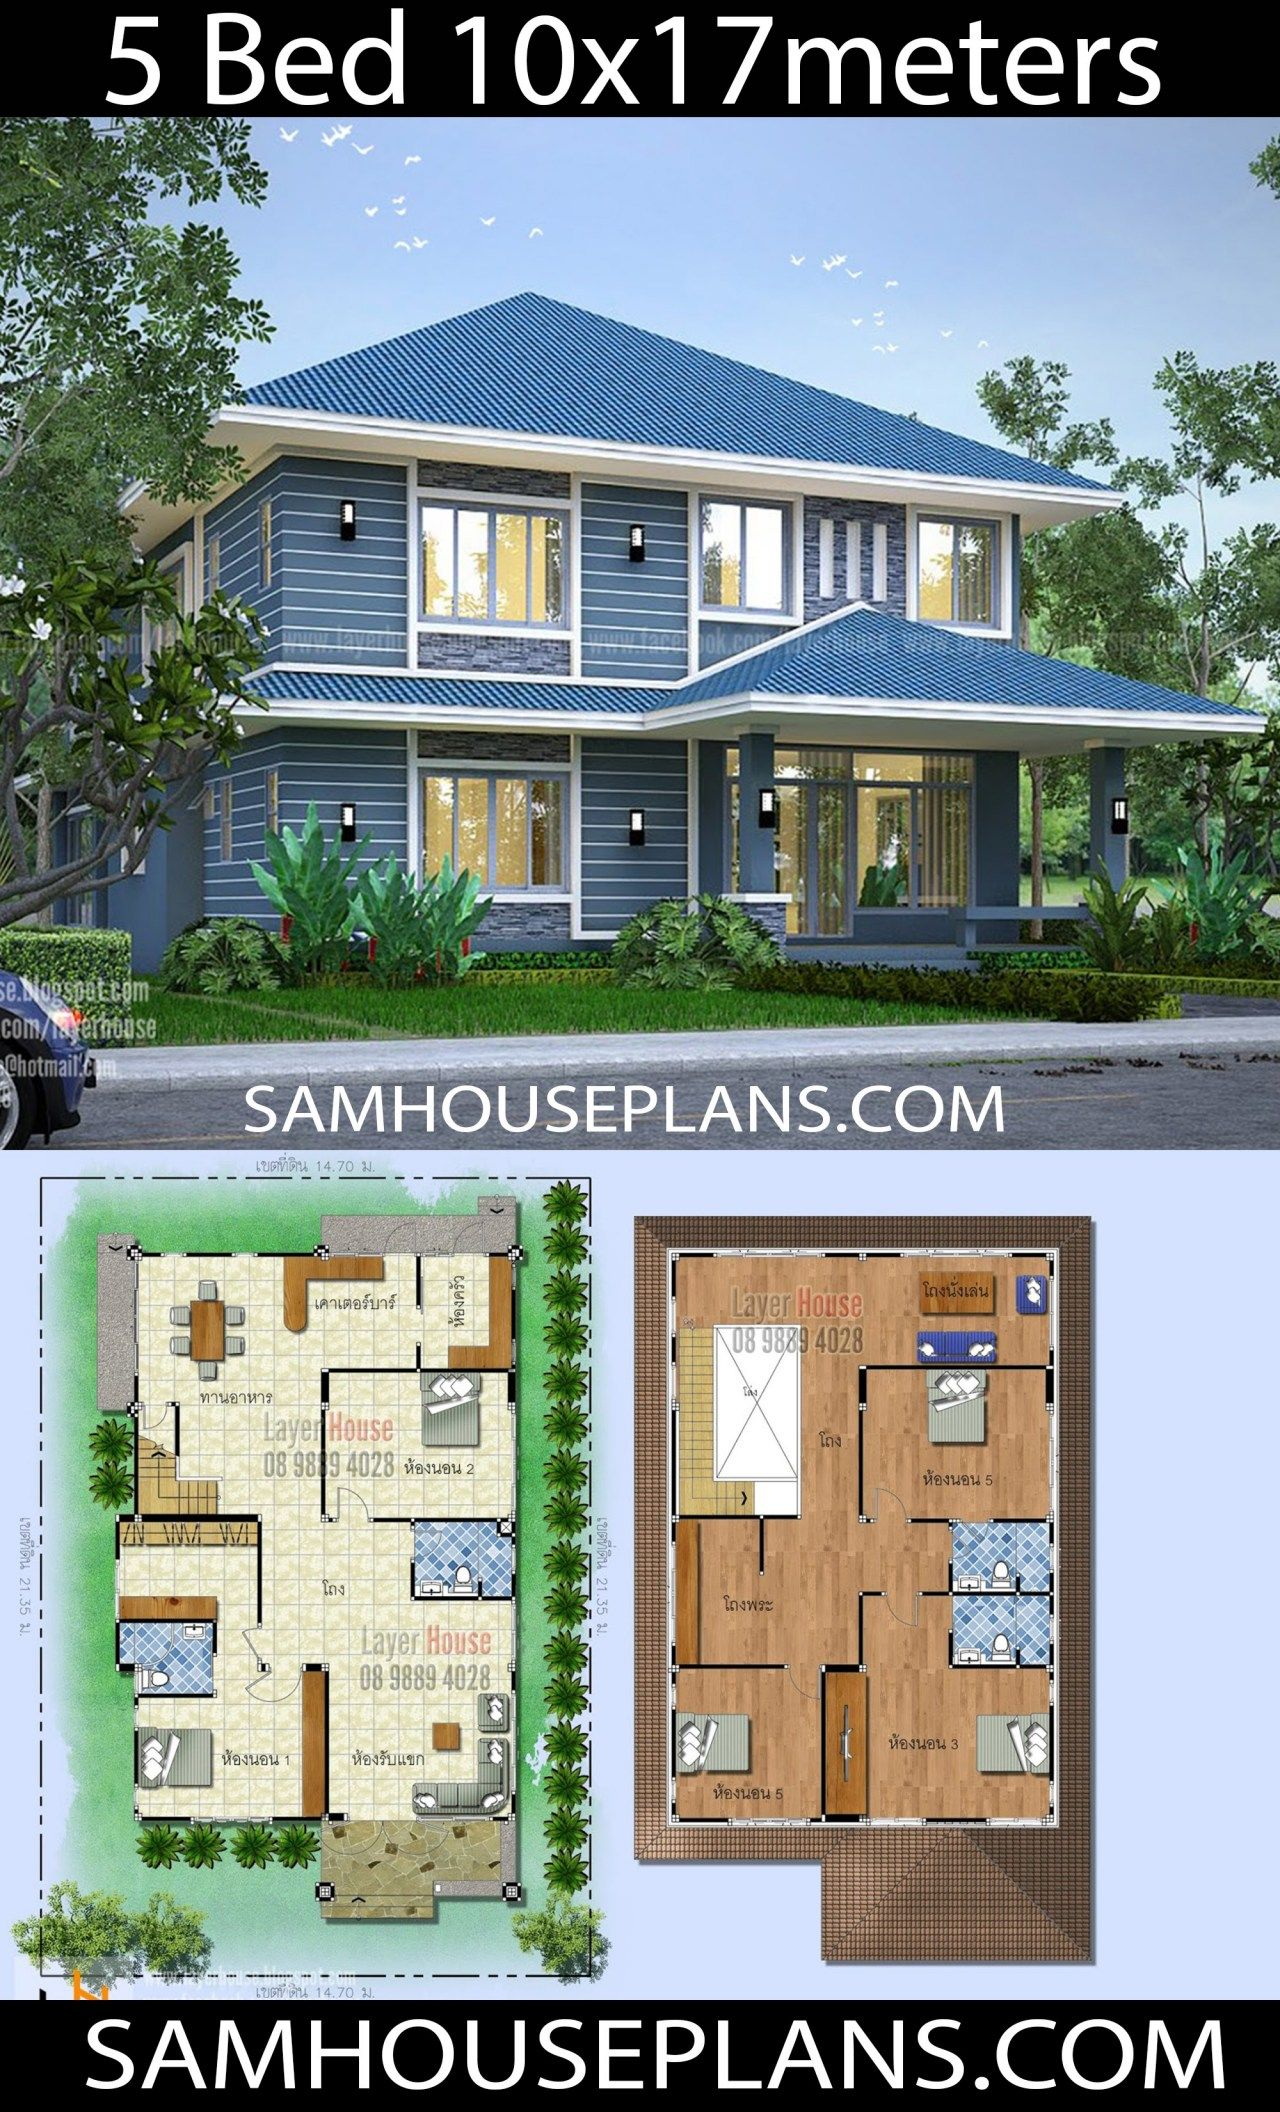 House Plans Idea 10x17m With 5 Bedrooms Sam House Plans House Plans Home Design Plans House